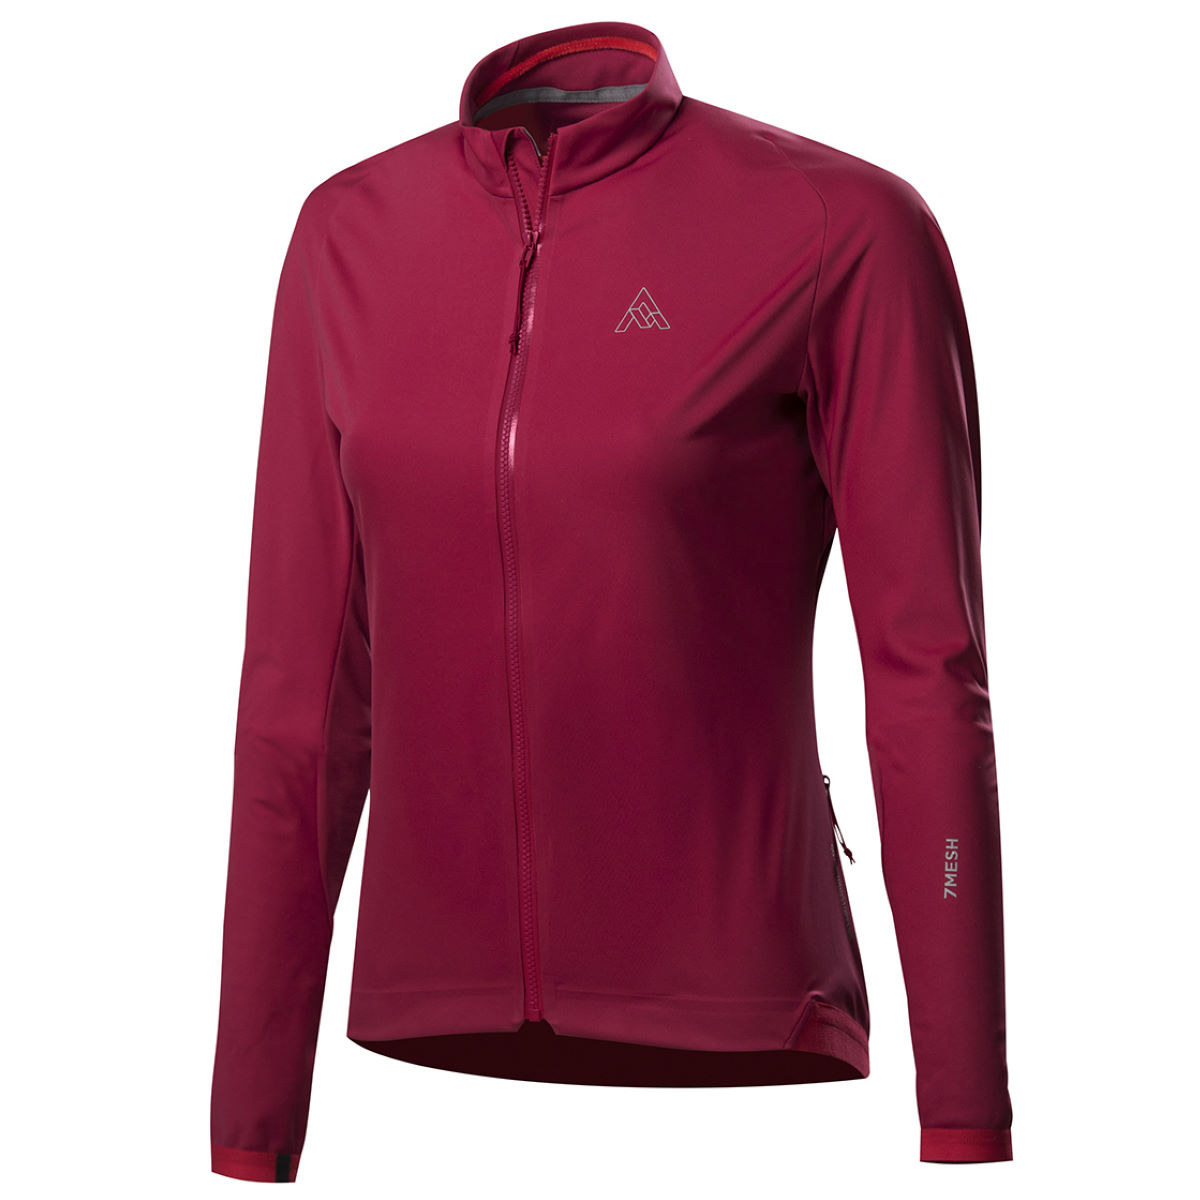 7Mesh Women's Synergy Long Sleeve Jersey - Maillots